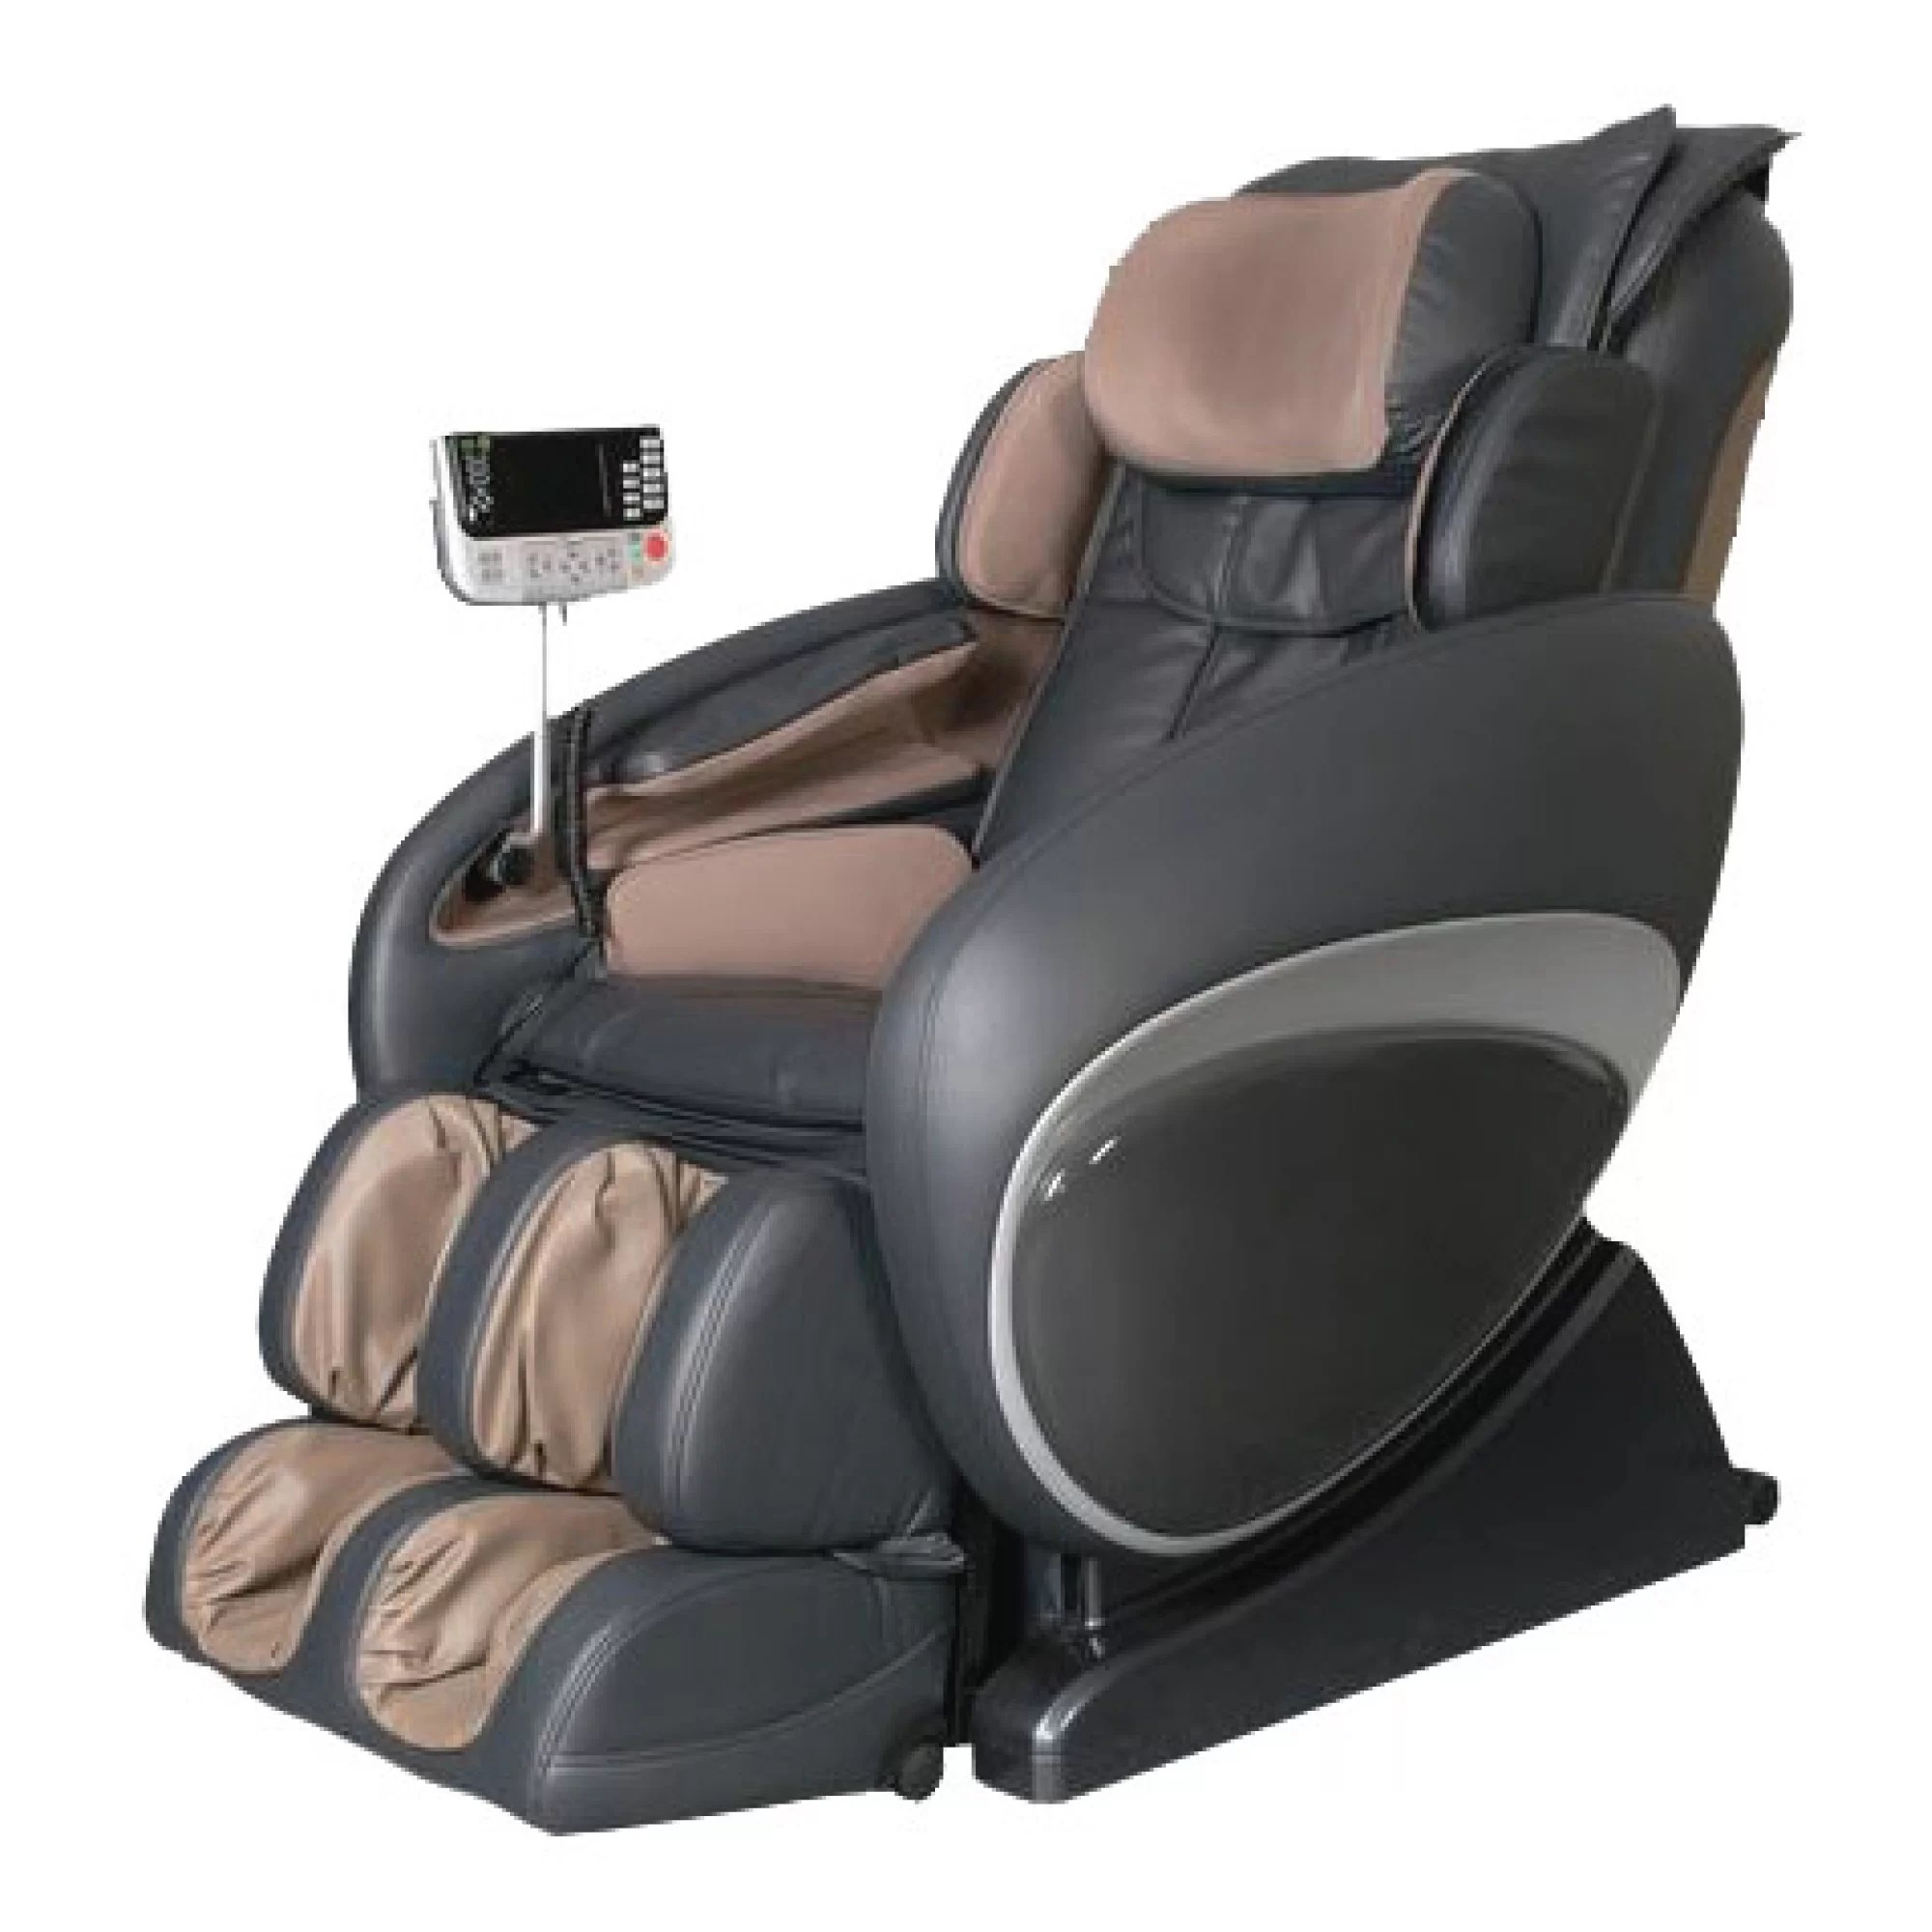 Message Chair Osaki Os 4000 Zero Gravity Heated Reclining Massage Chair